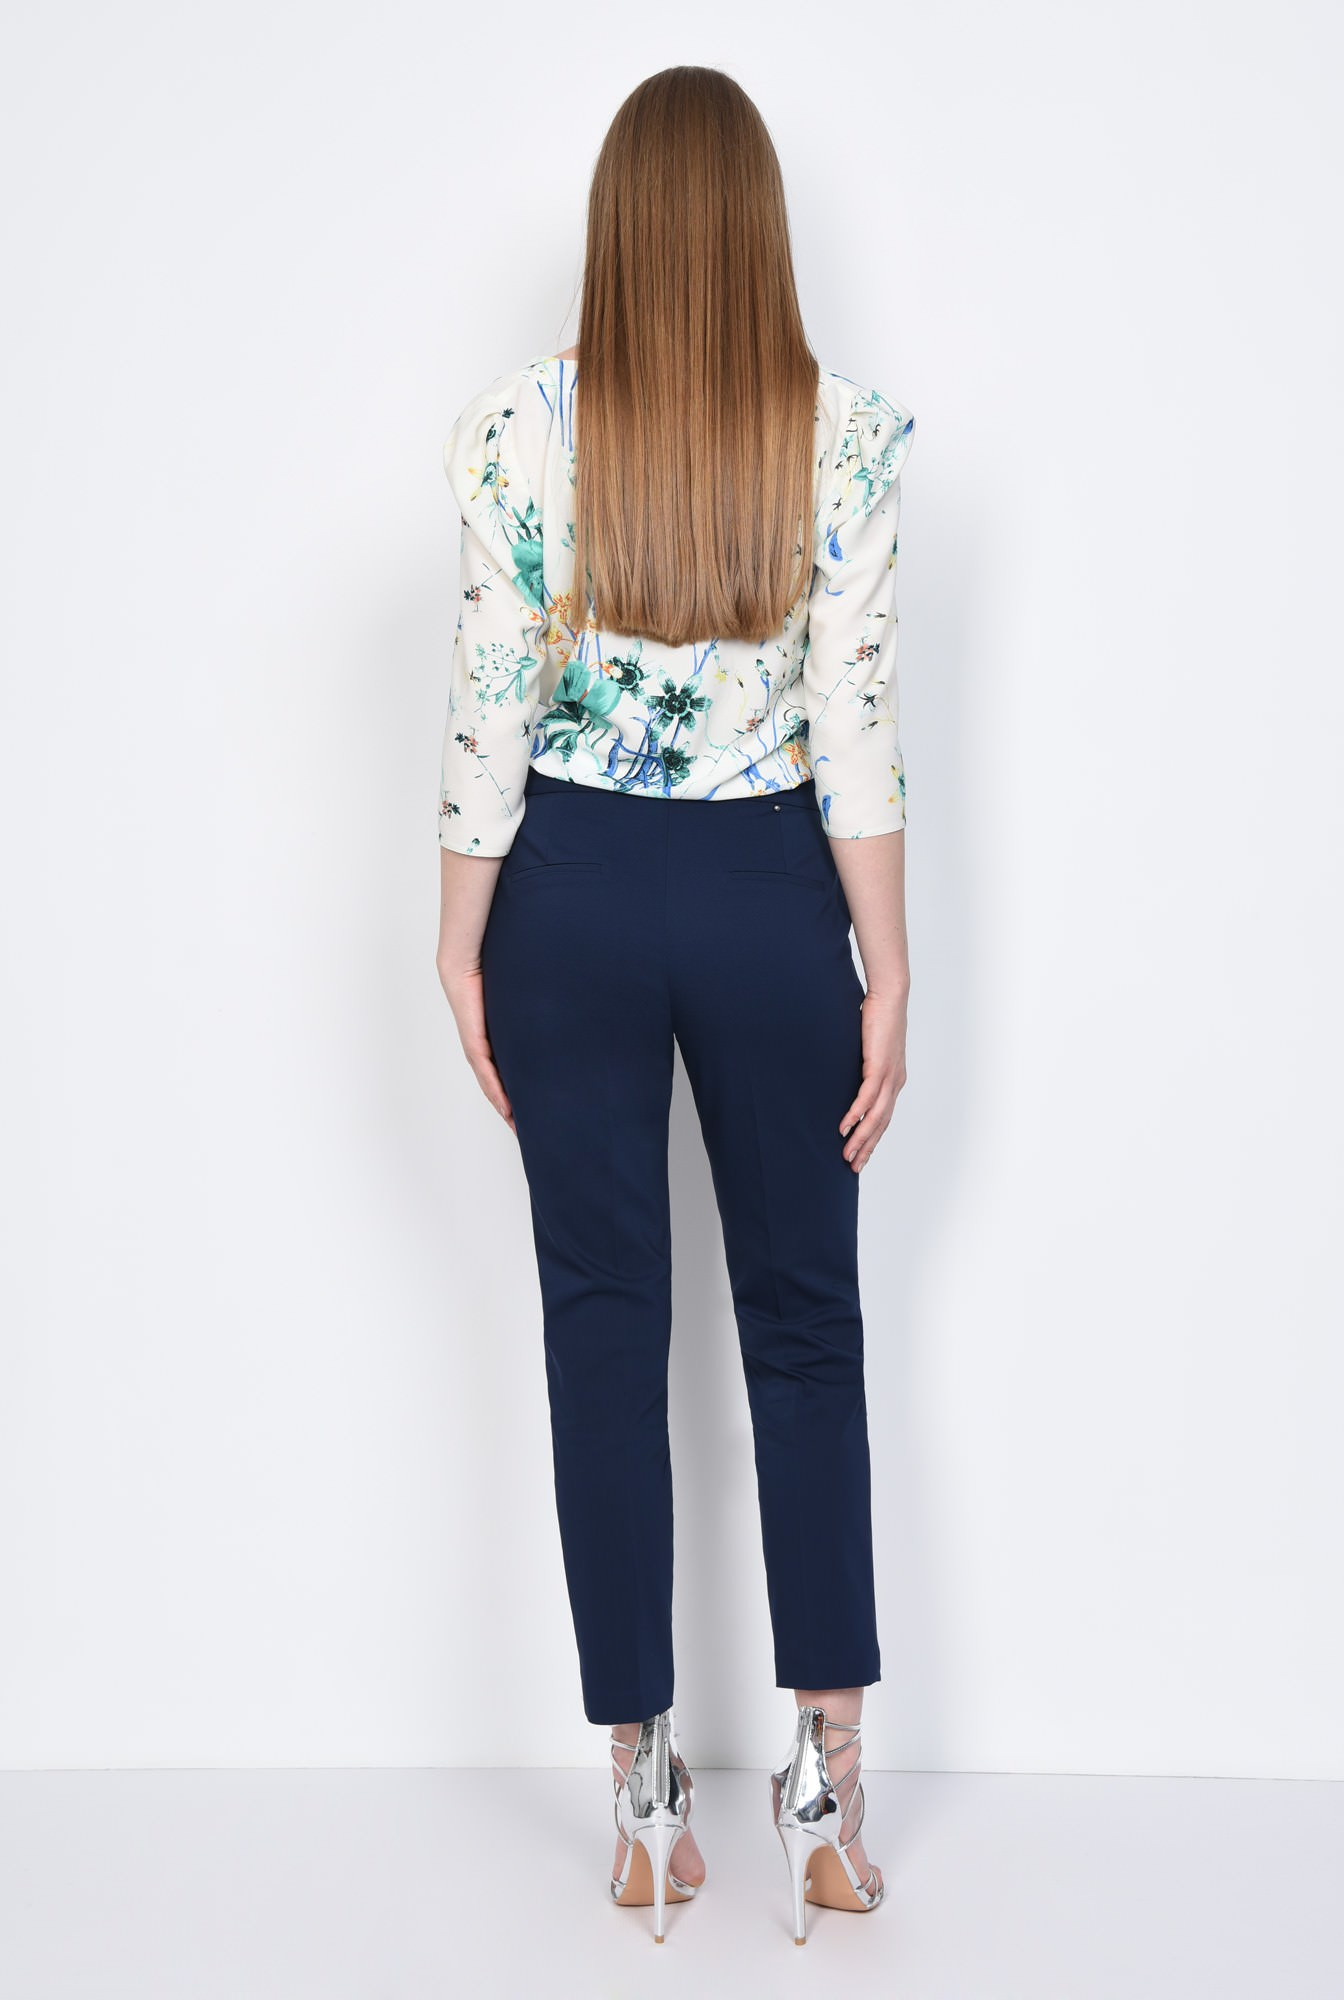 1 - PANTALON OFFICE CONIC PT 144-BLEUMARIN